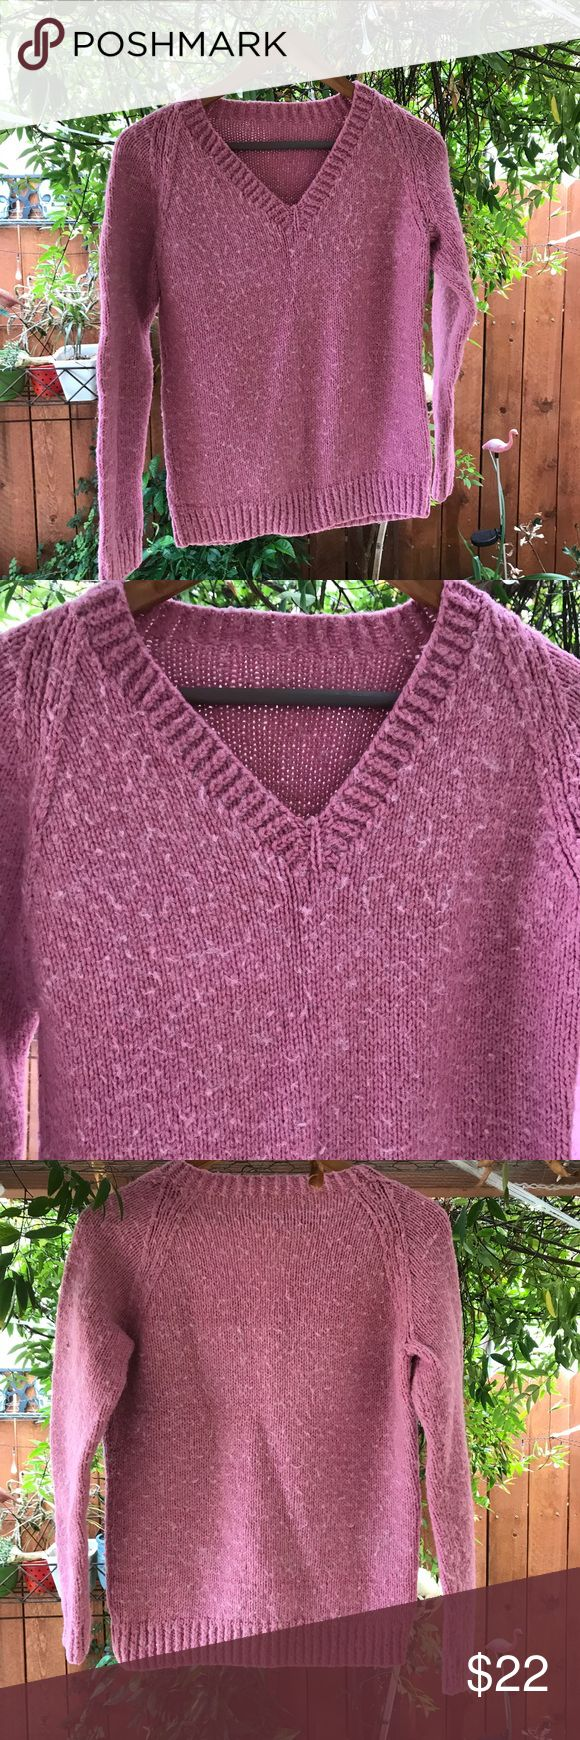 Vintage 90s women's pink blush sweater small Preppy hipster style 90s wool feel sweater Vintage Sweaters Crew & Scoop Necks